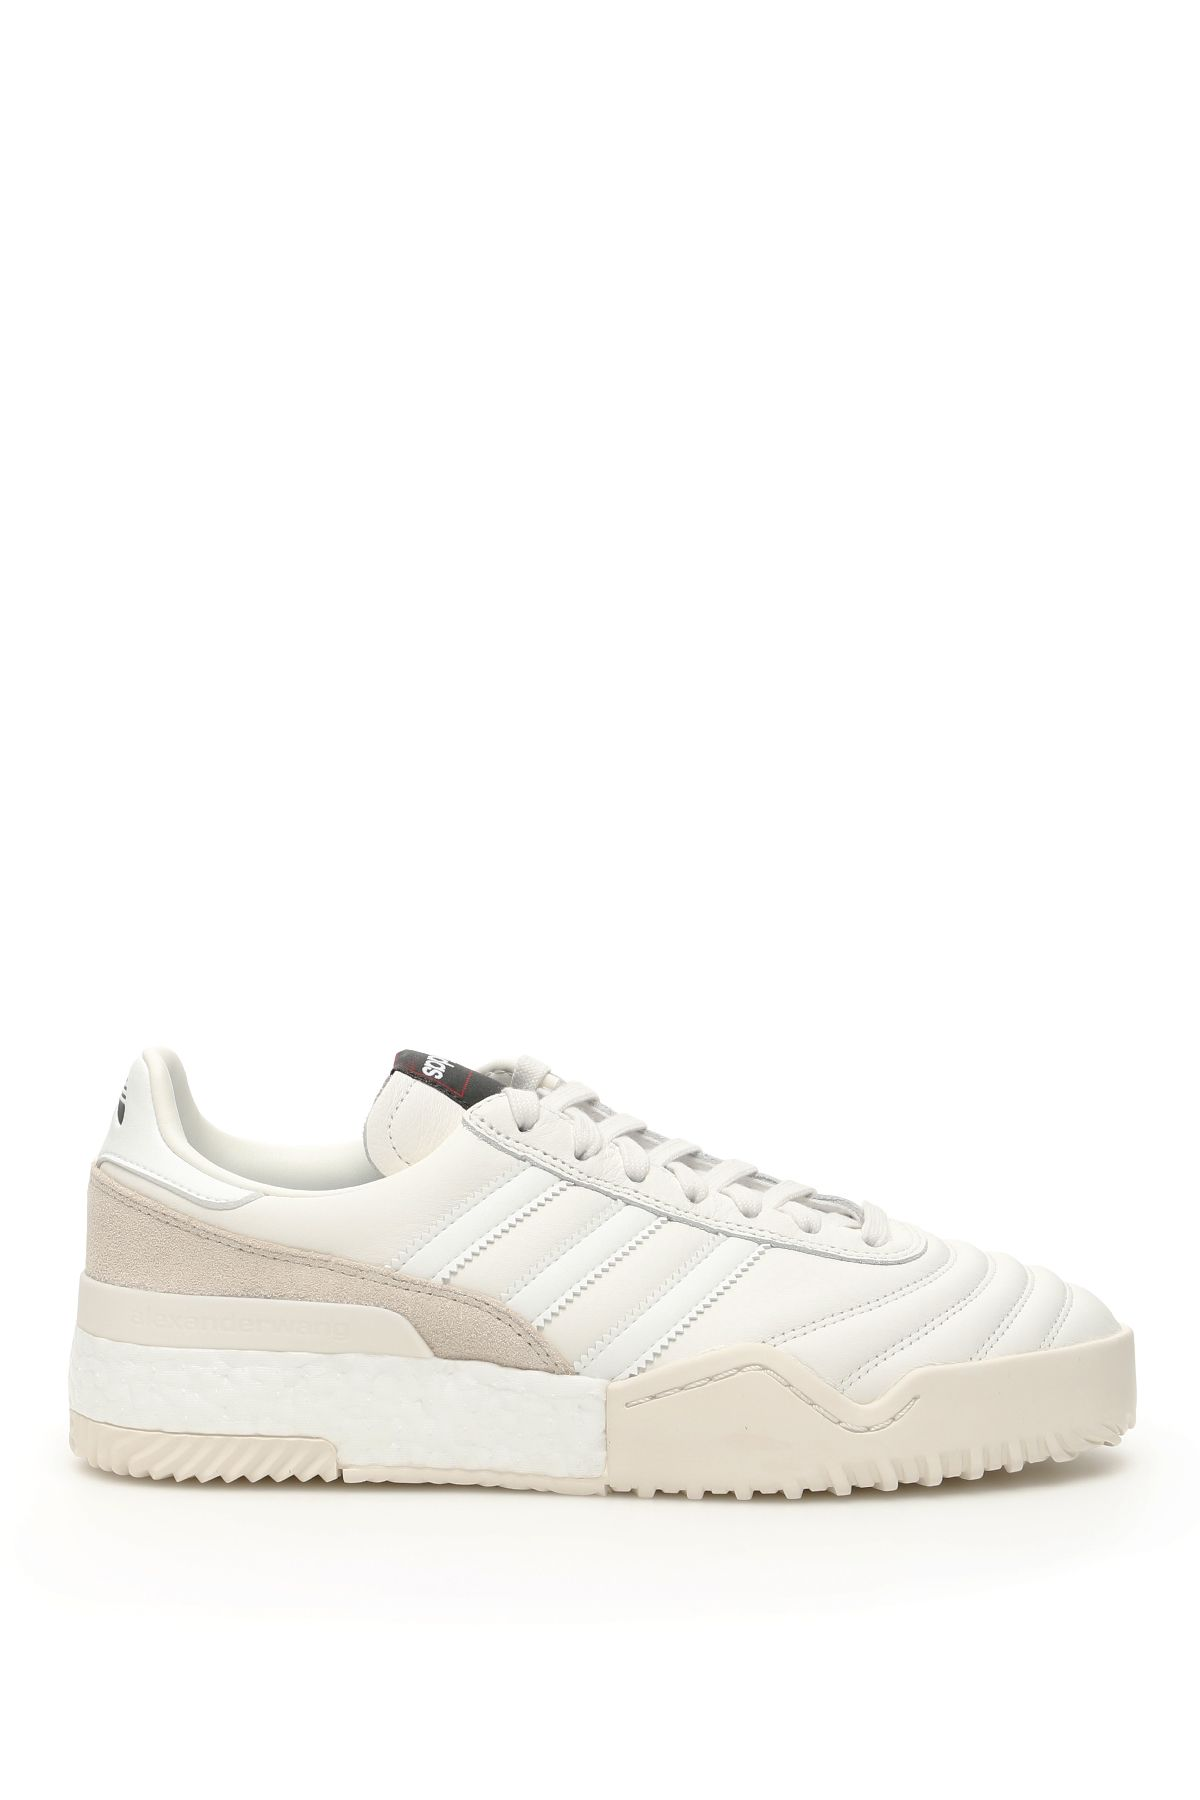 471d15d31e83 Adidas Originals by Alexander Wang Aw Bball Soccer Sneakers - CORE WHITE  CHALK PEARL (White ...